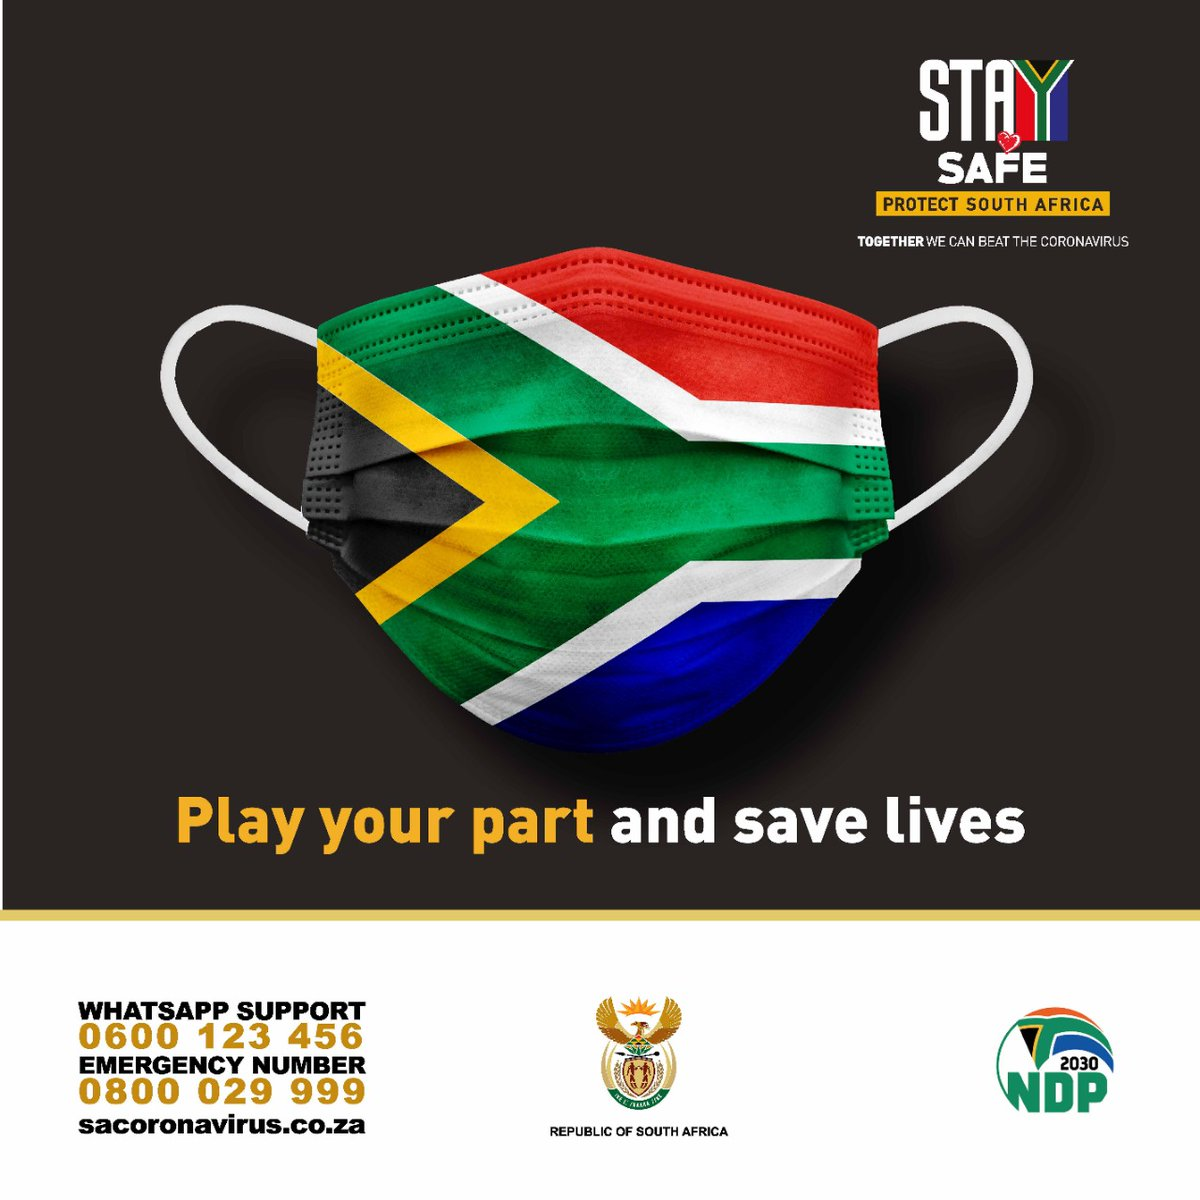 Good morning South Africa.  Don't forget to wear your mask, keep to social distancing and wash or sanitize your hands. #COVID19 is still with us. #StaySafe